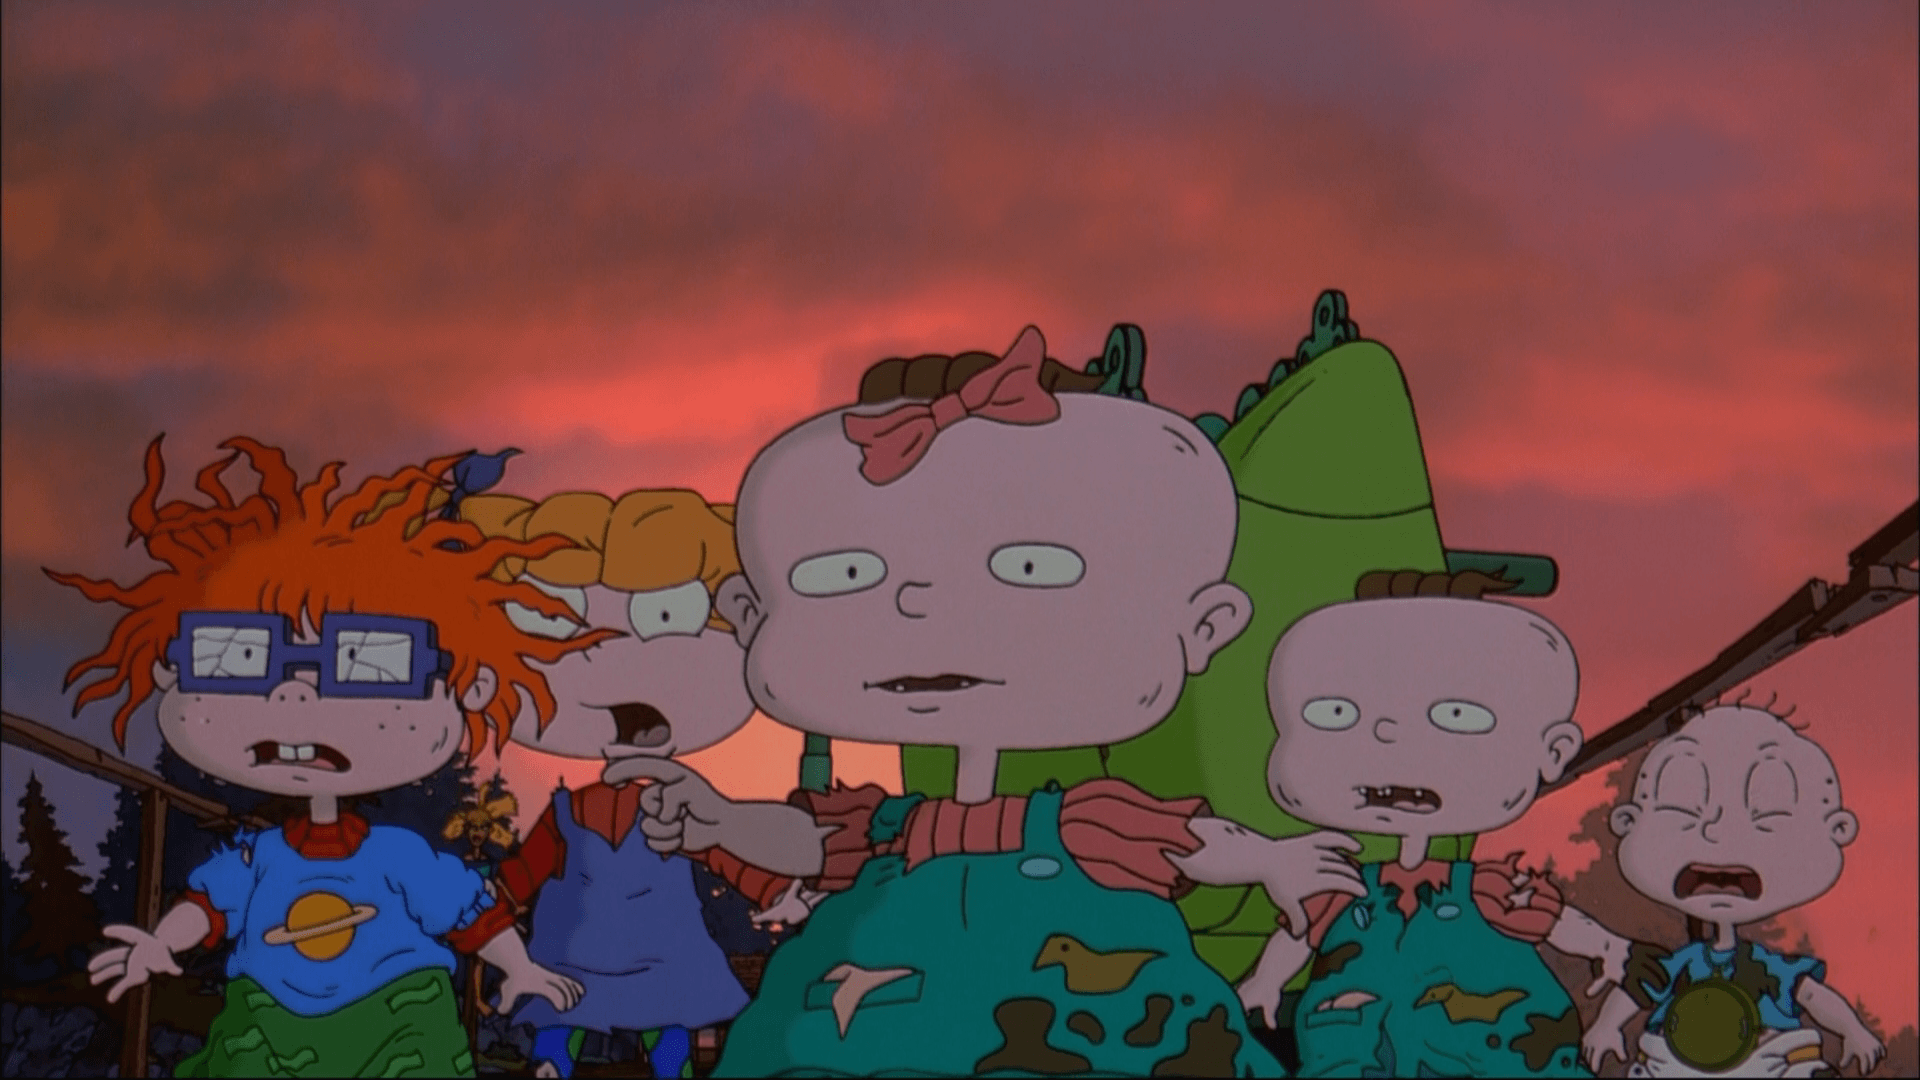 Rugrats wallpapers and images - wallpapers, pictures, photos